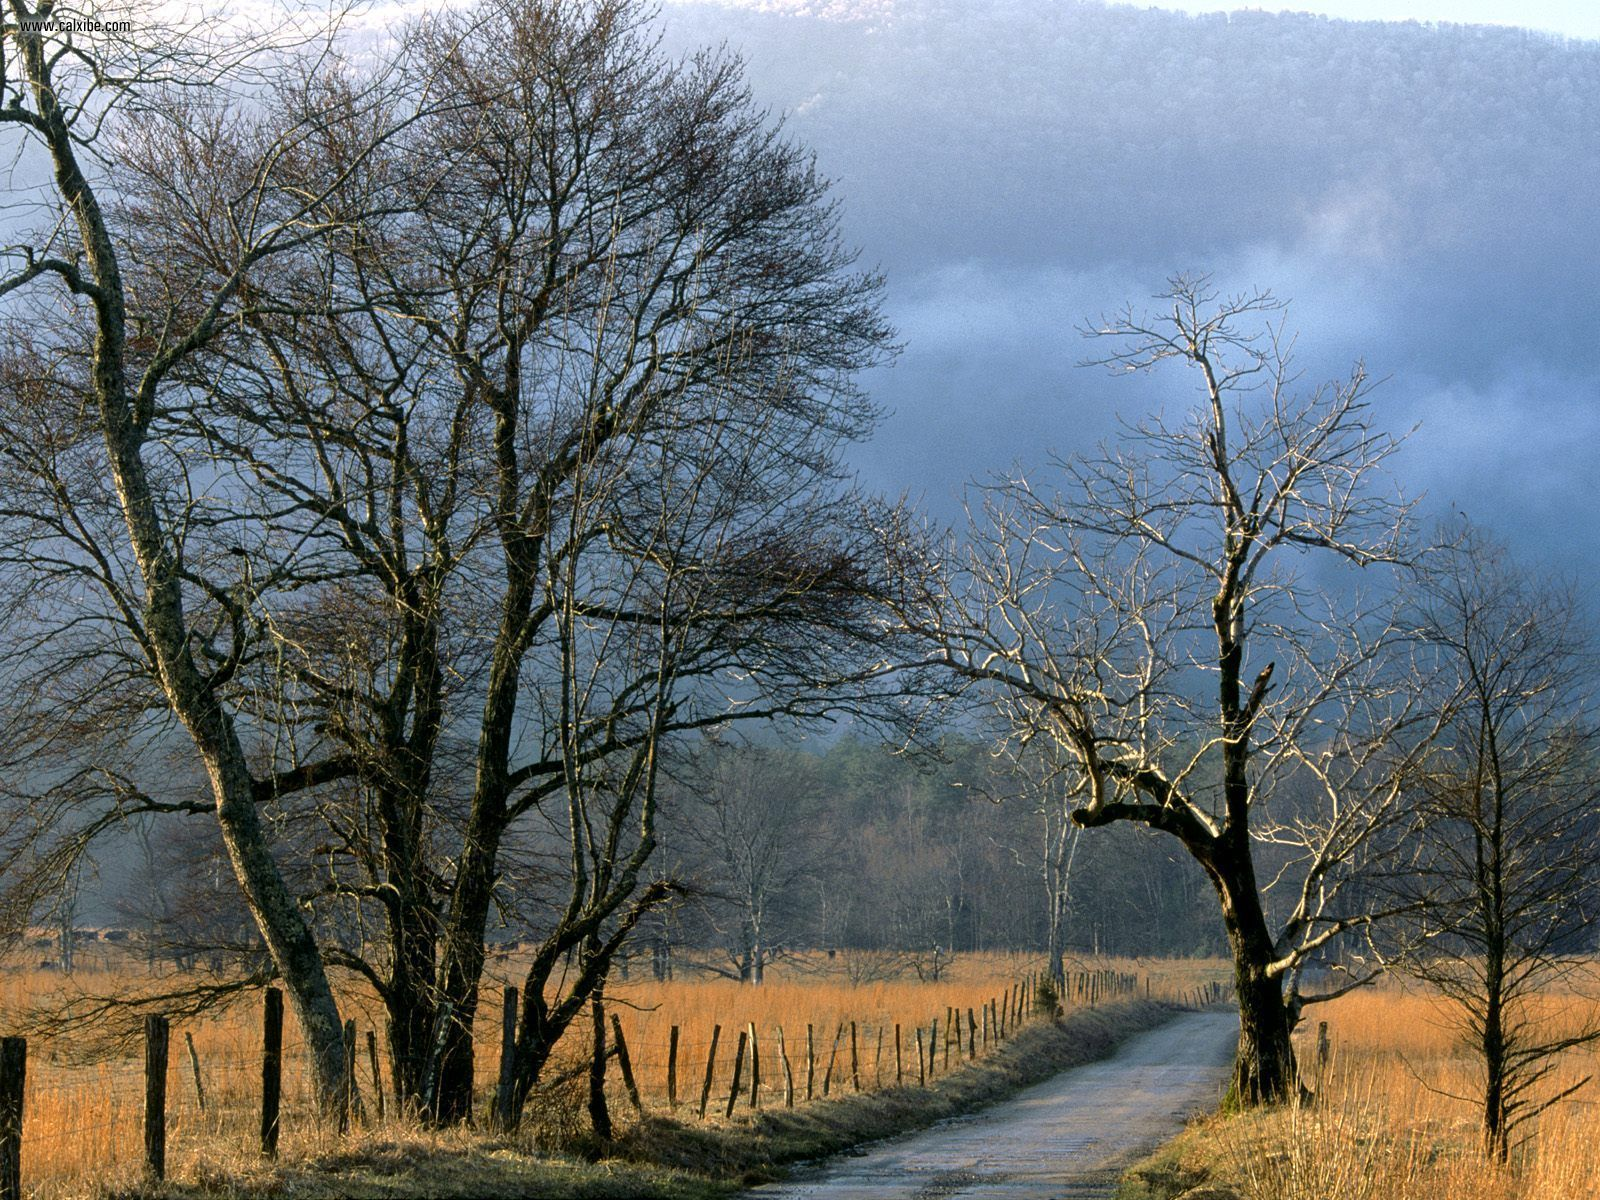 Sparks Lane Cades Cove Great Smoky Mountains National Park Tennessee 1600x1200